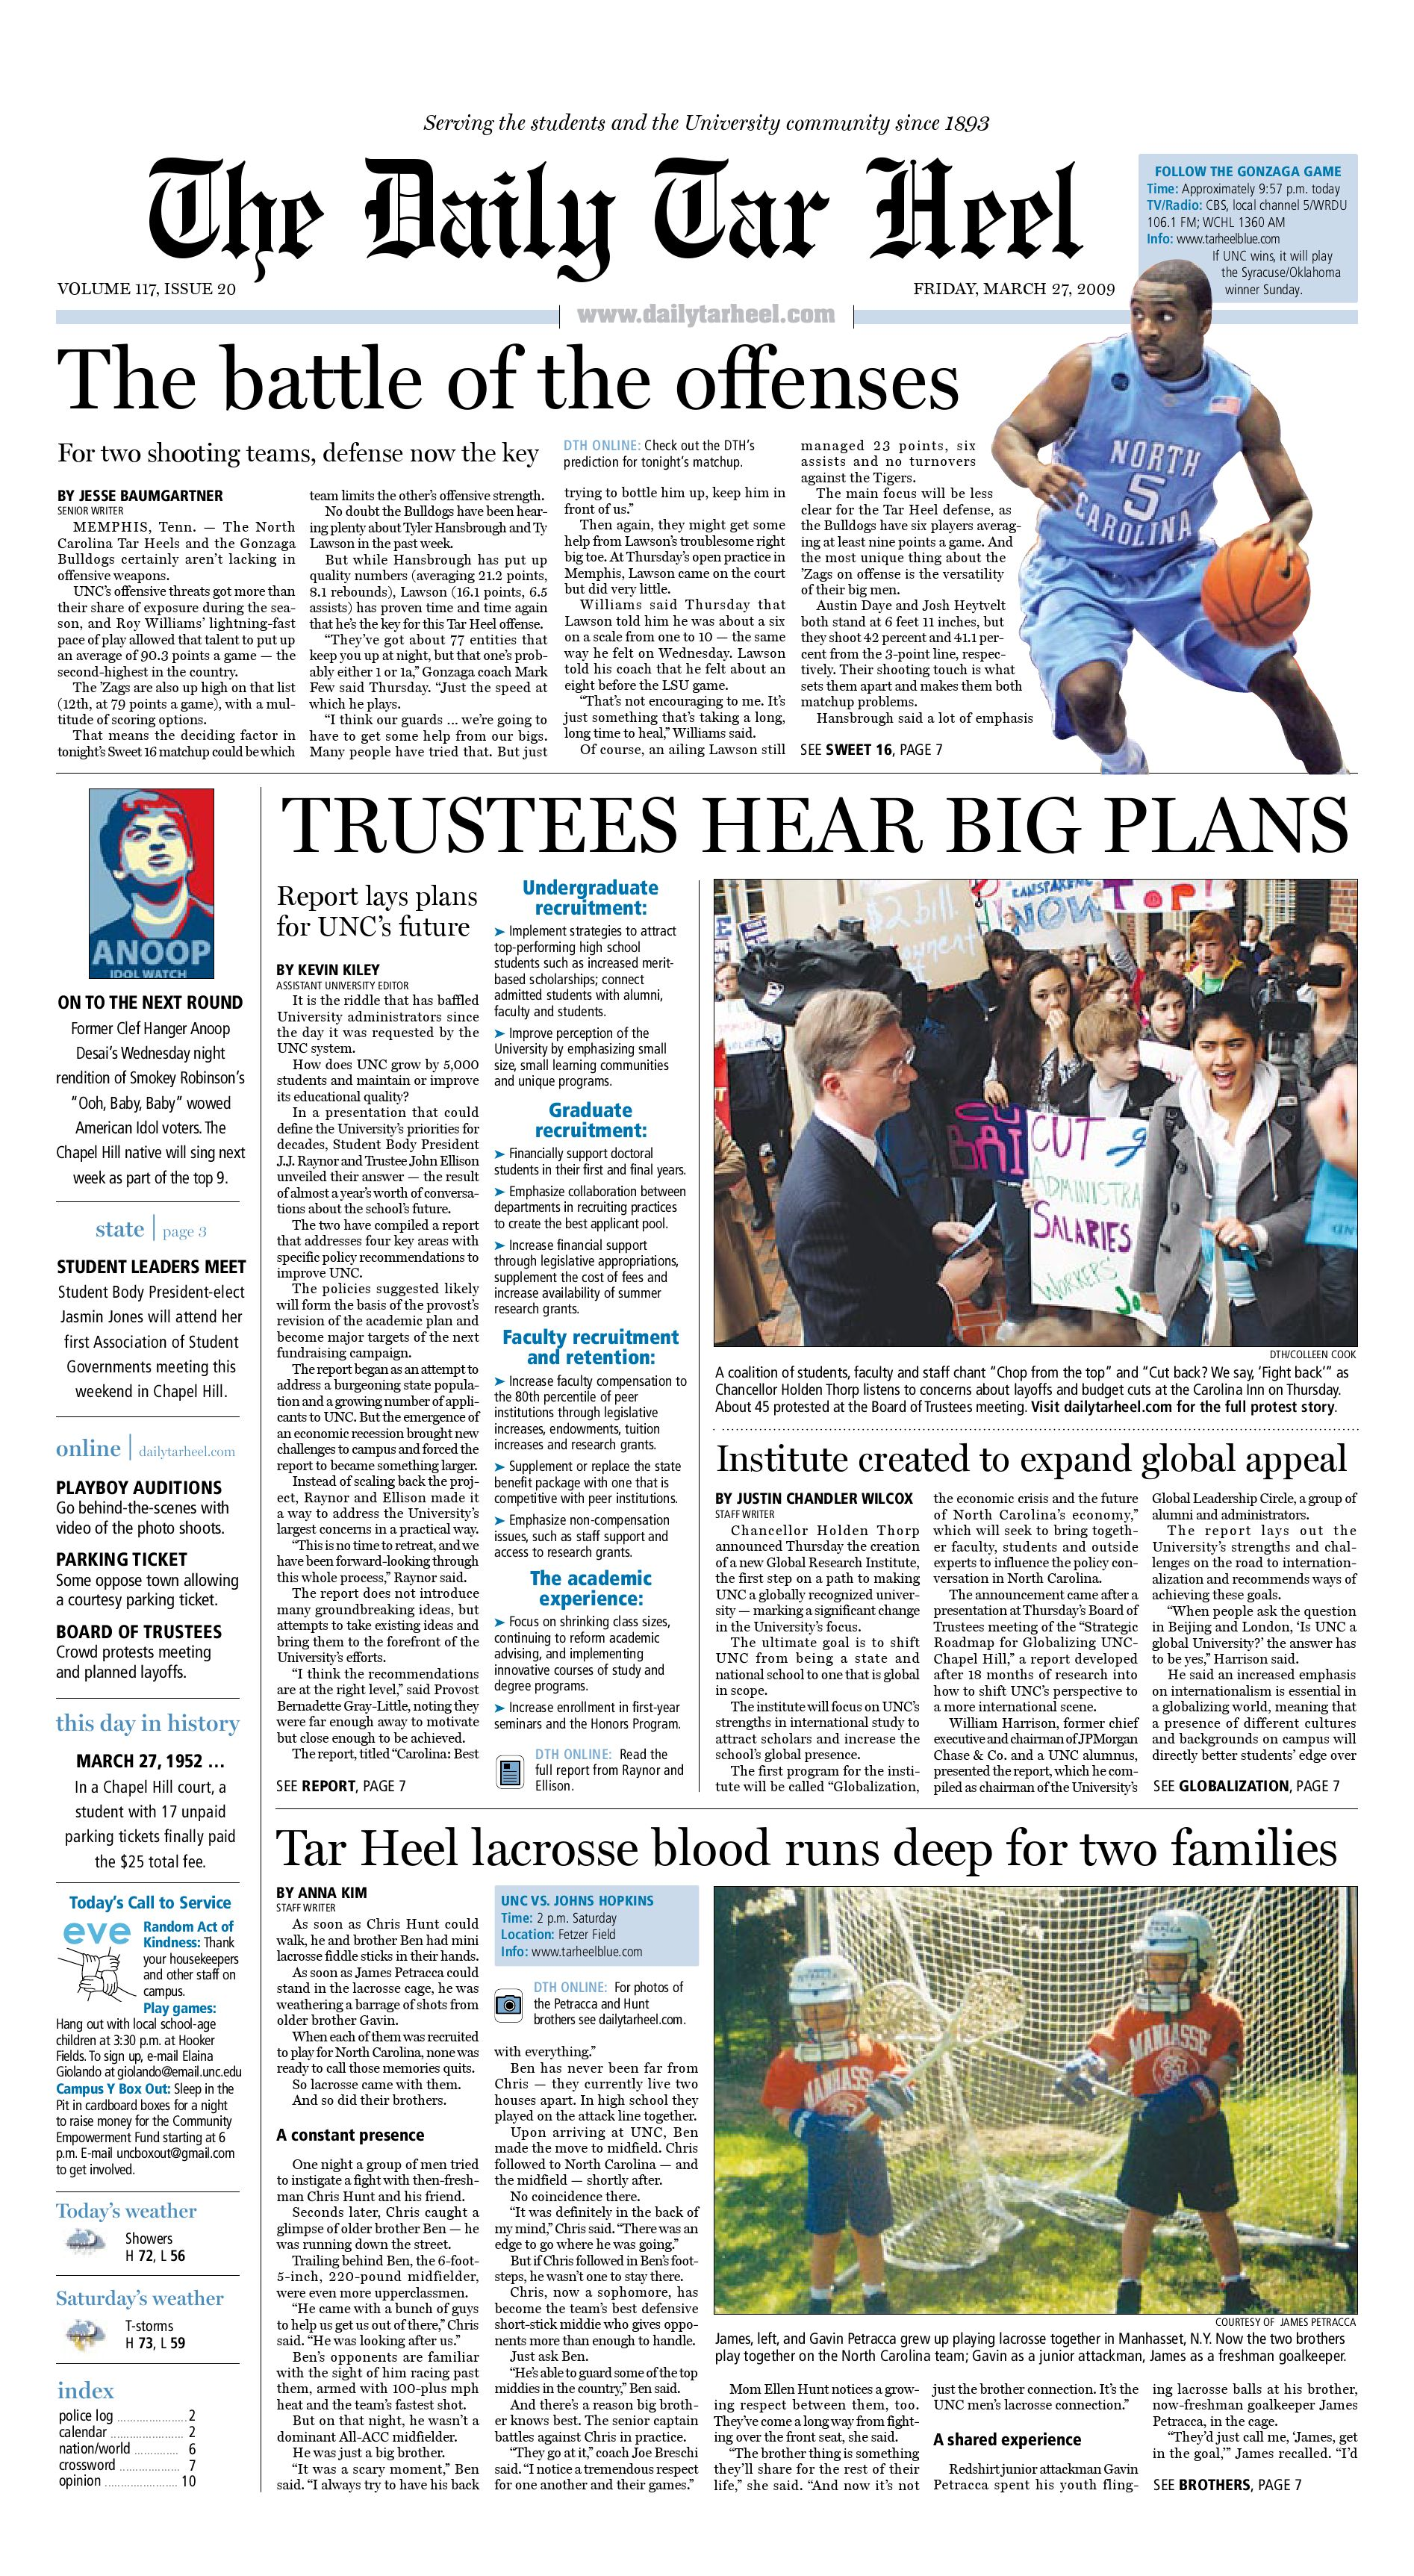 The Daily Tar Heel for March 27, 2009 by The Daily Tar Heel